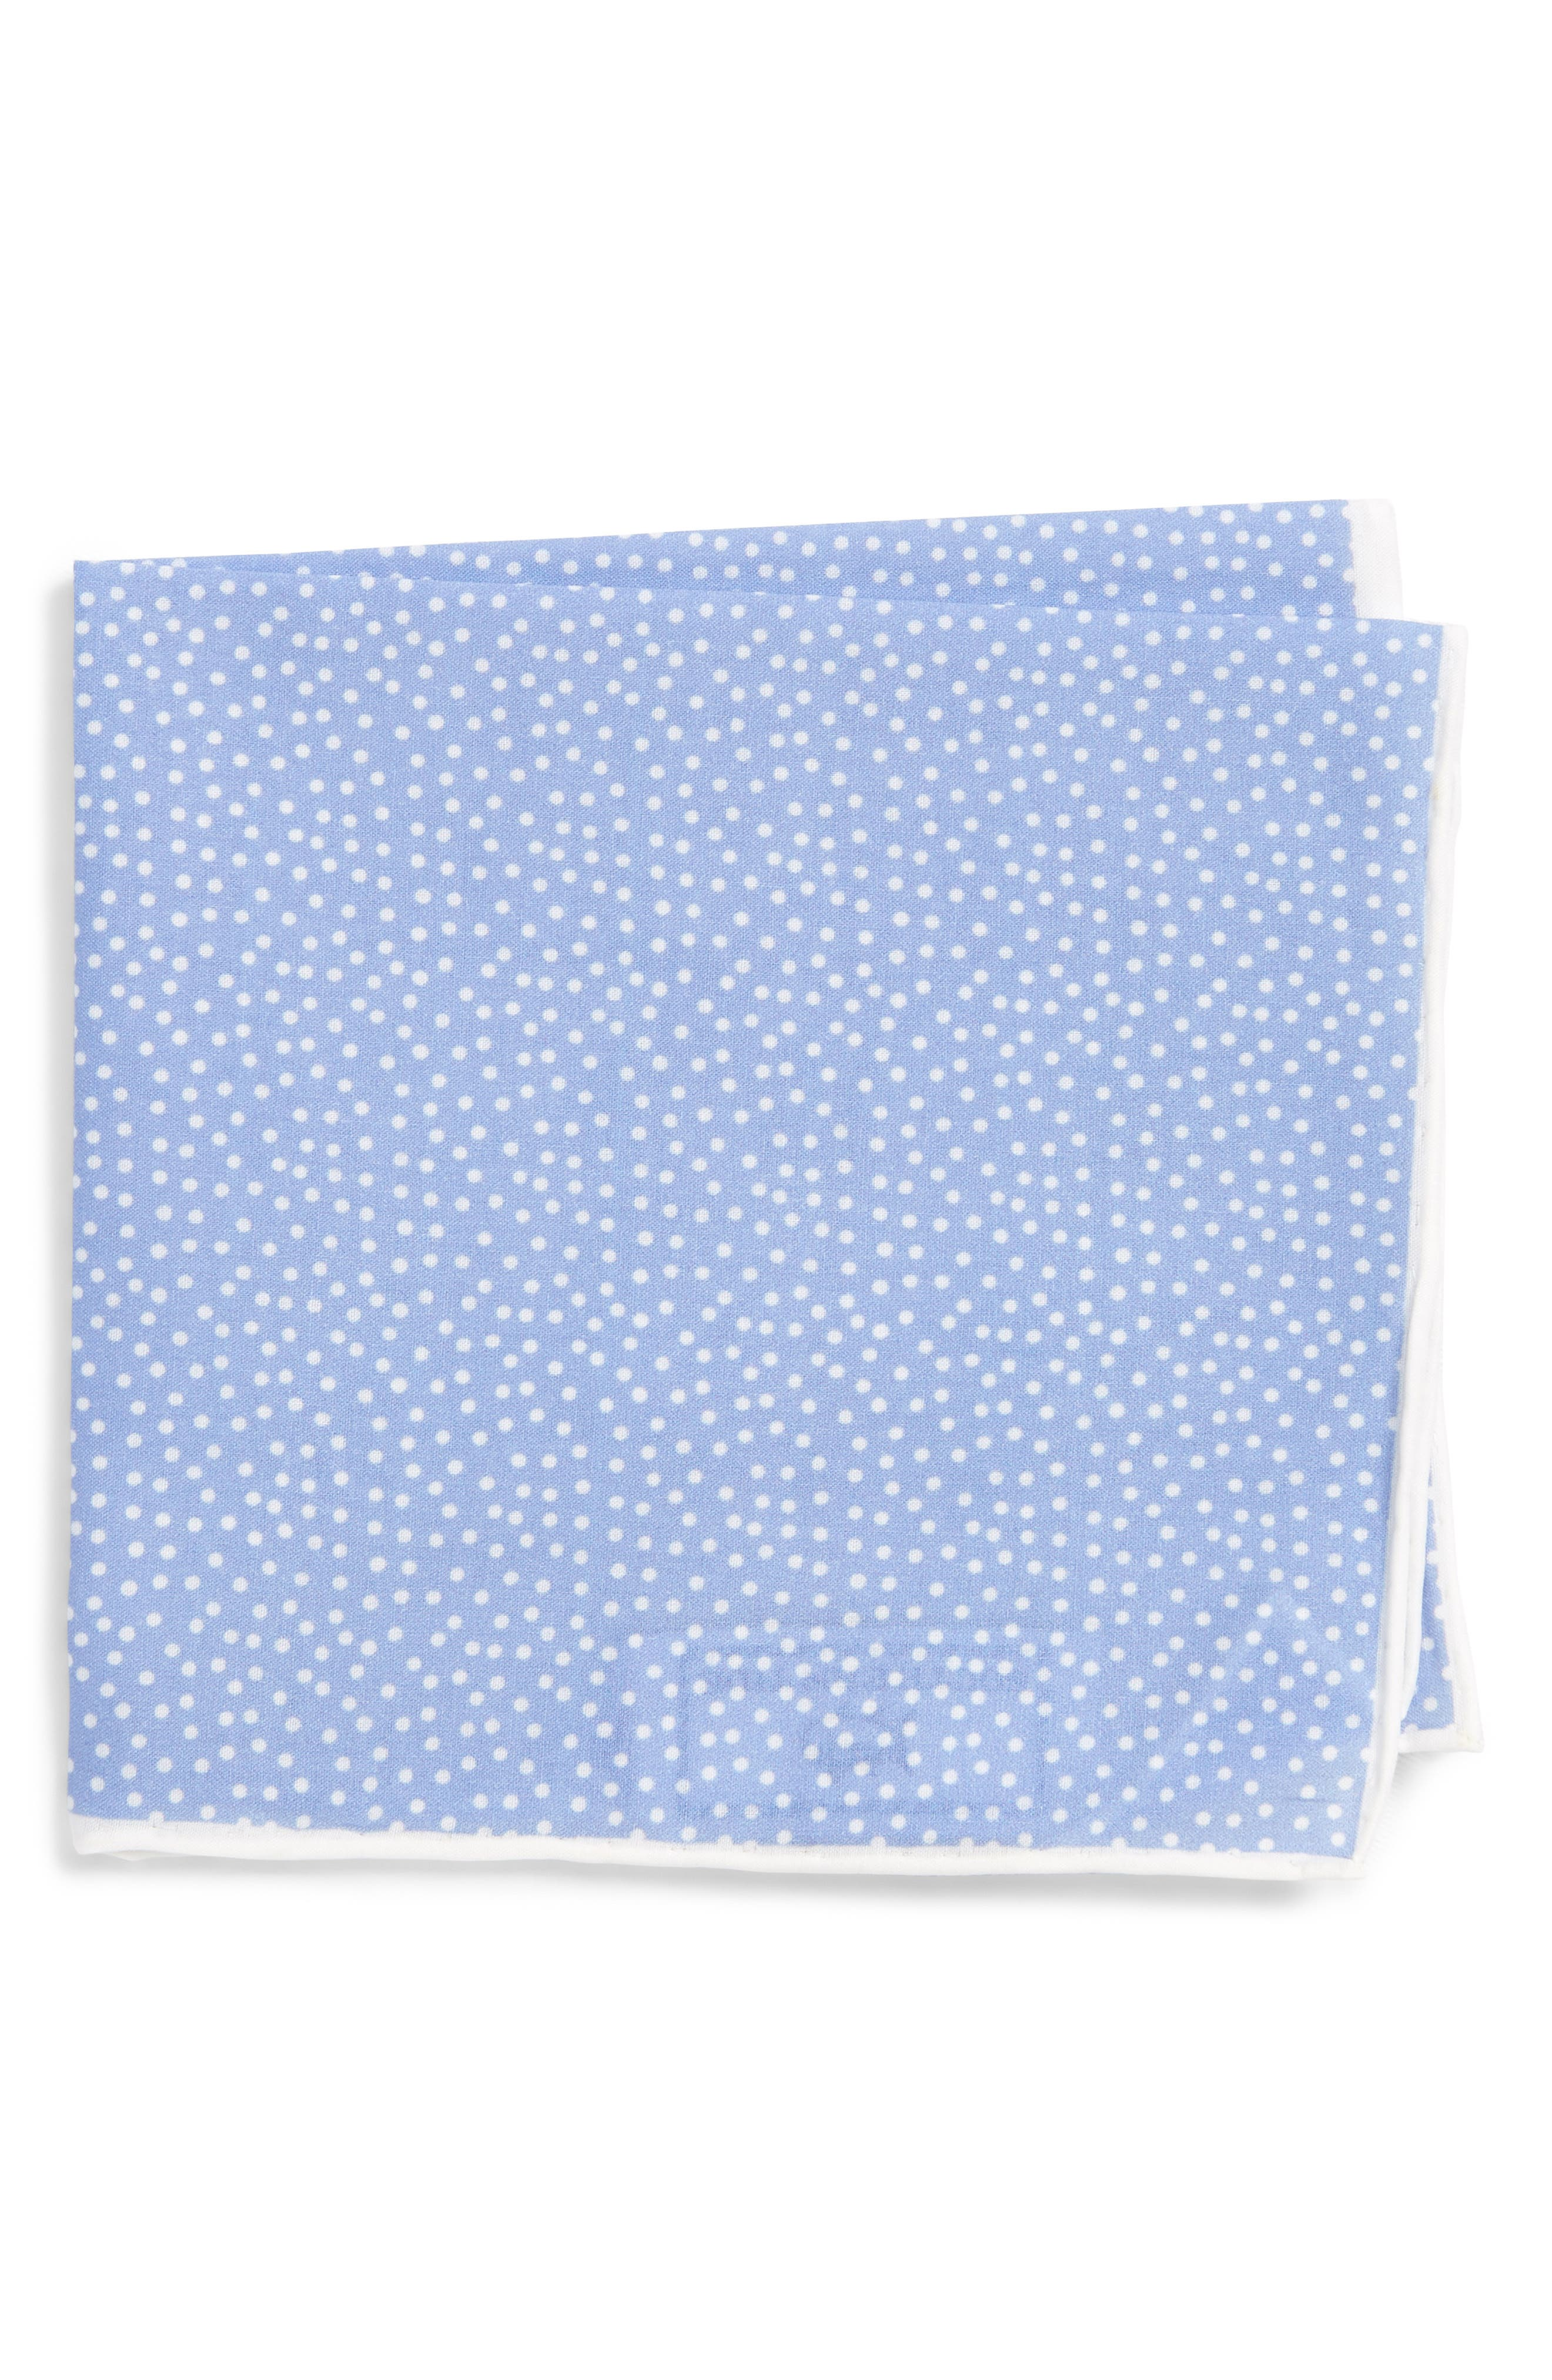 SOUTHERN TIDE Sagamore Spots Cotton & Silk Pocket Square, Main, color, BLUE